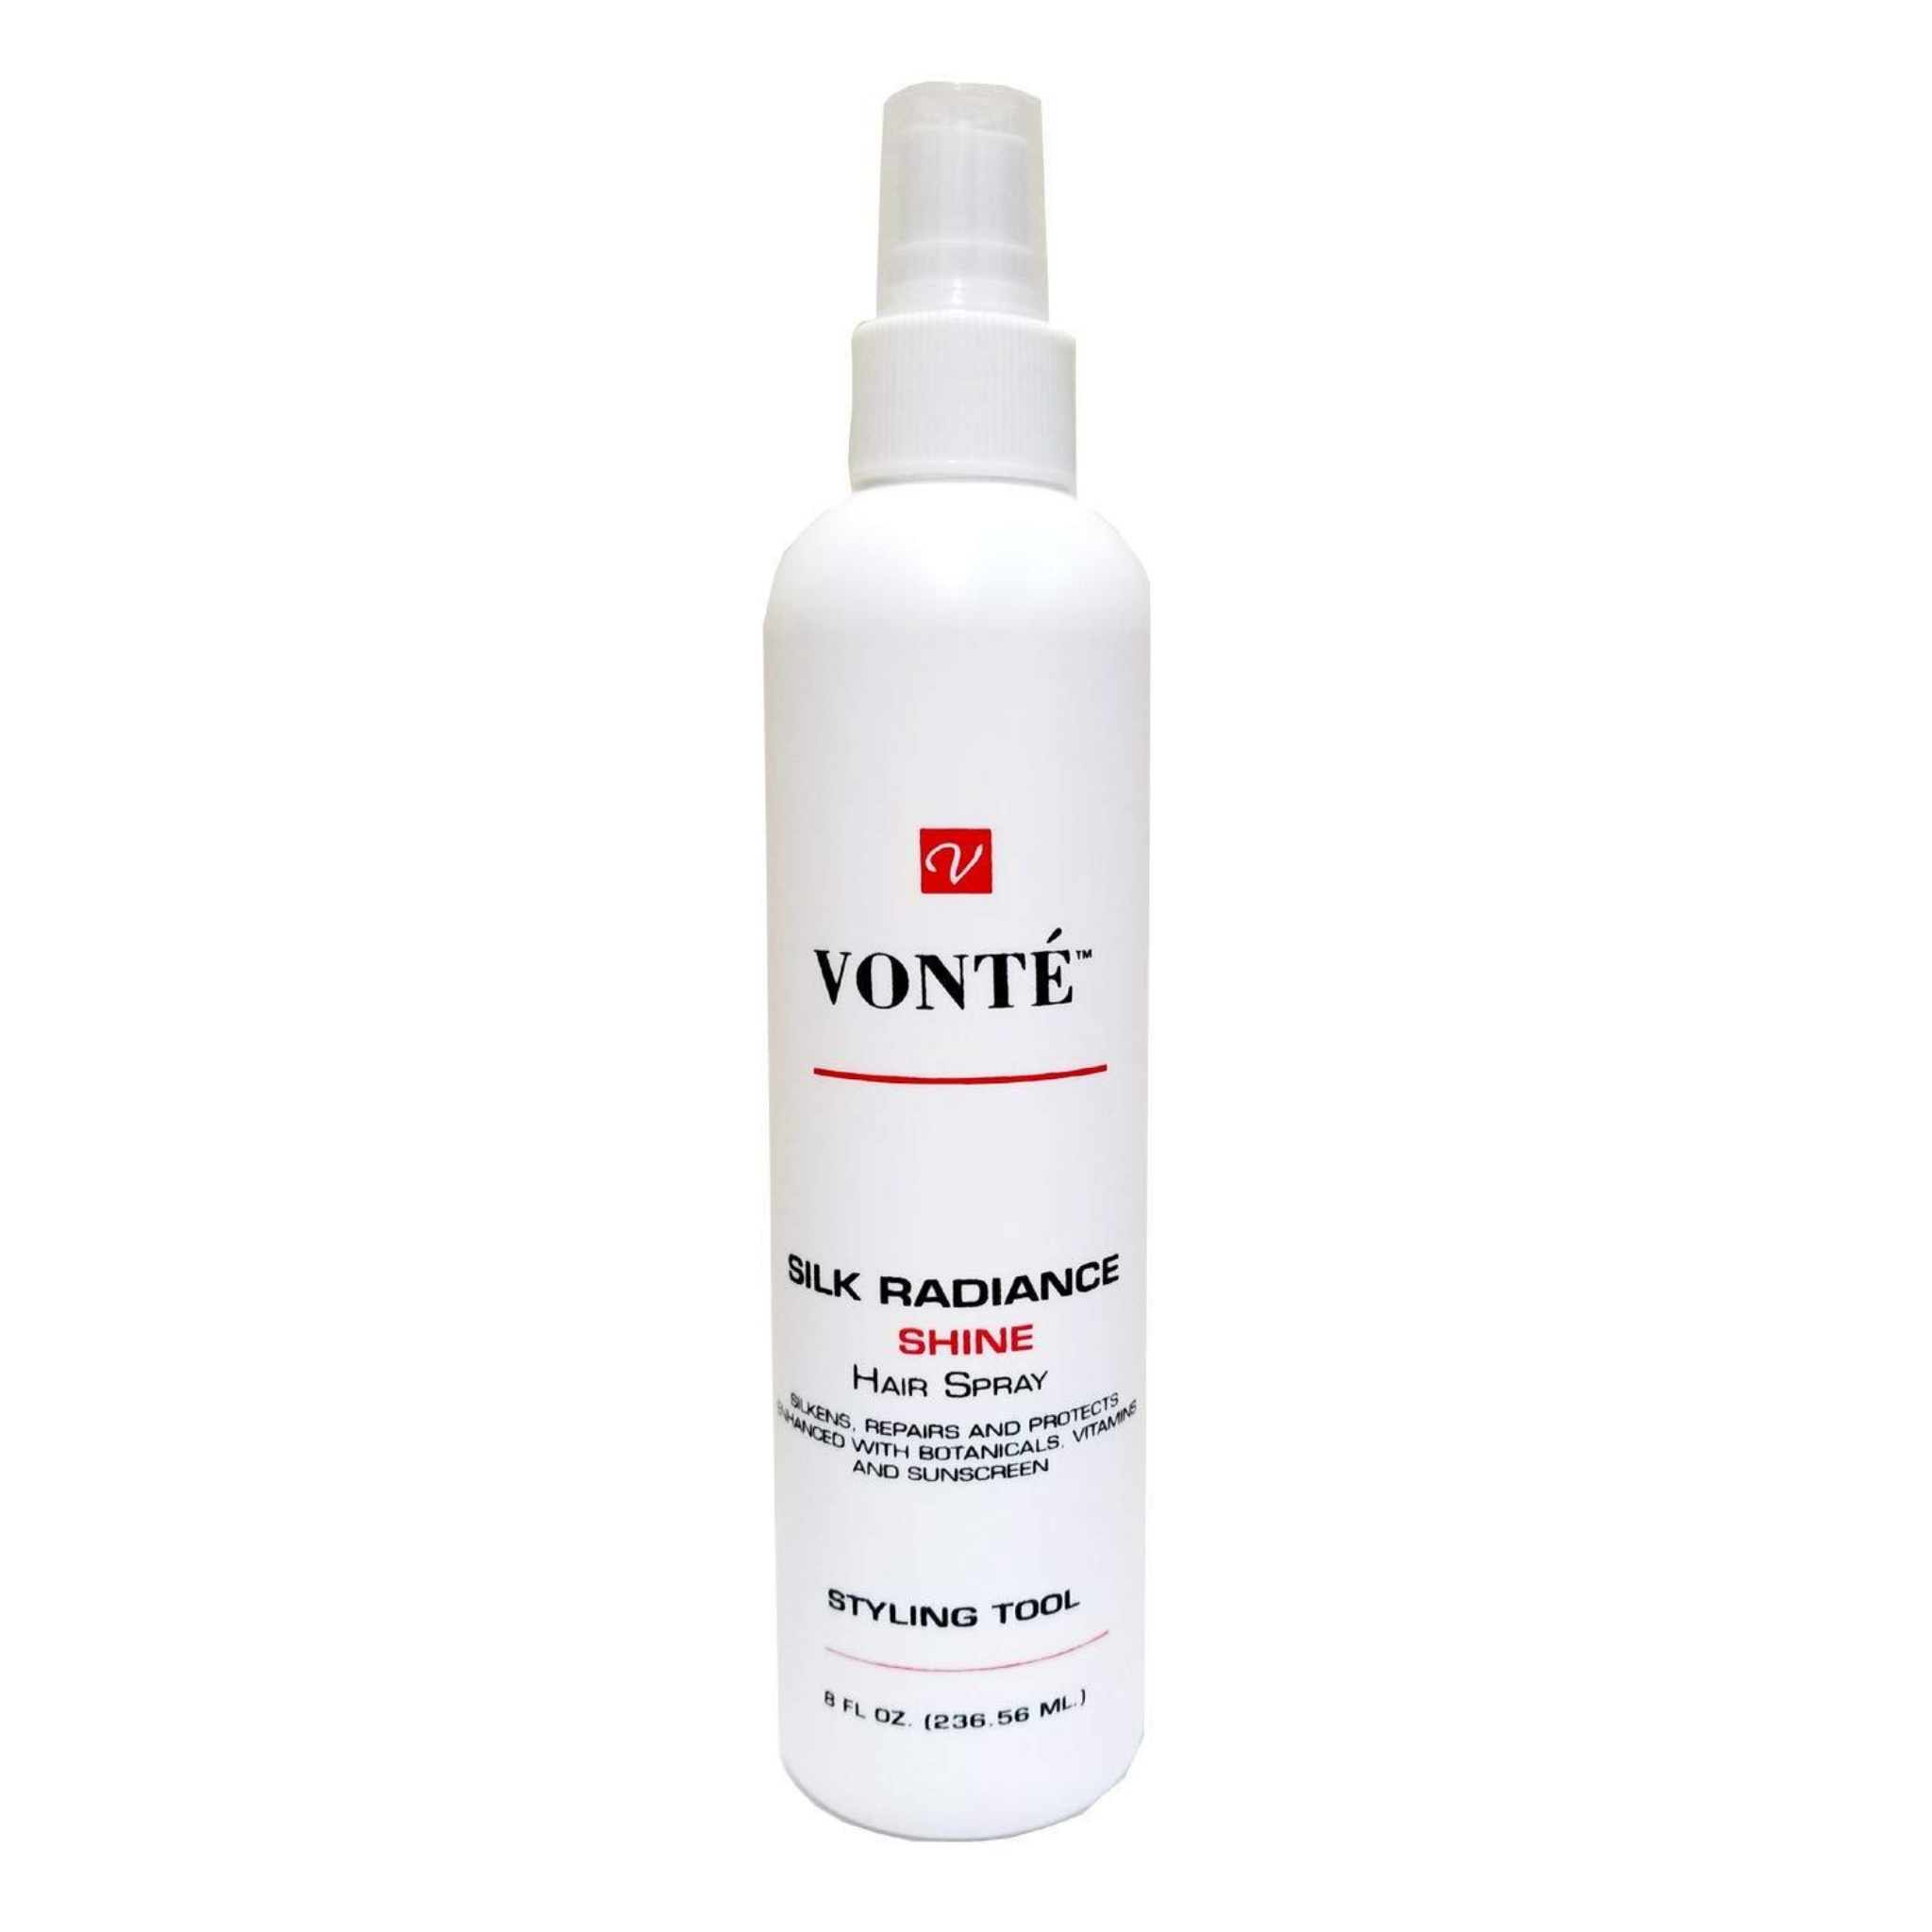 Vonte Silk Radiance Shine Spray